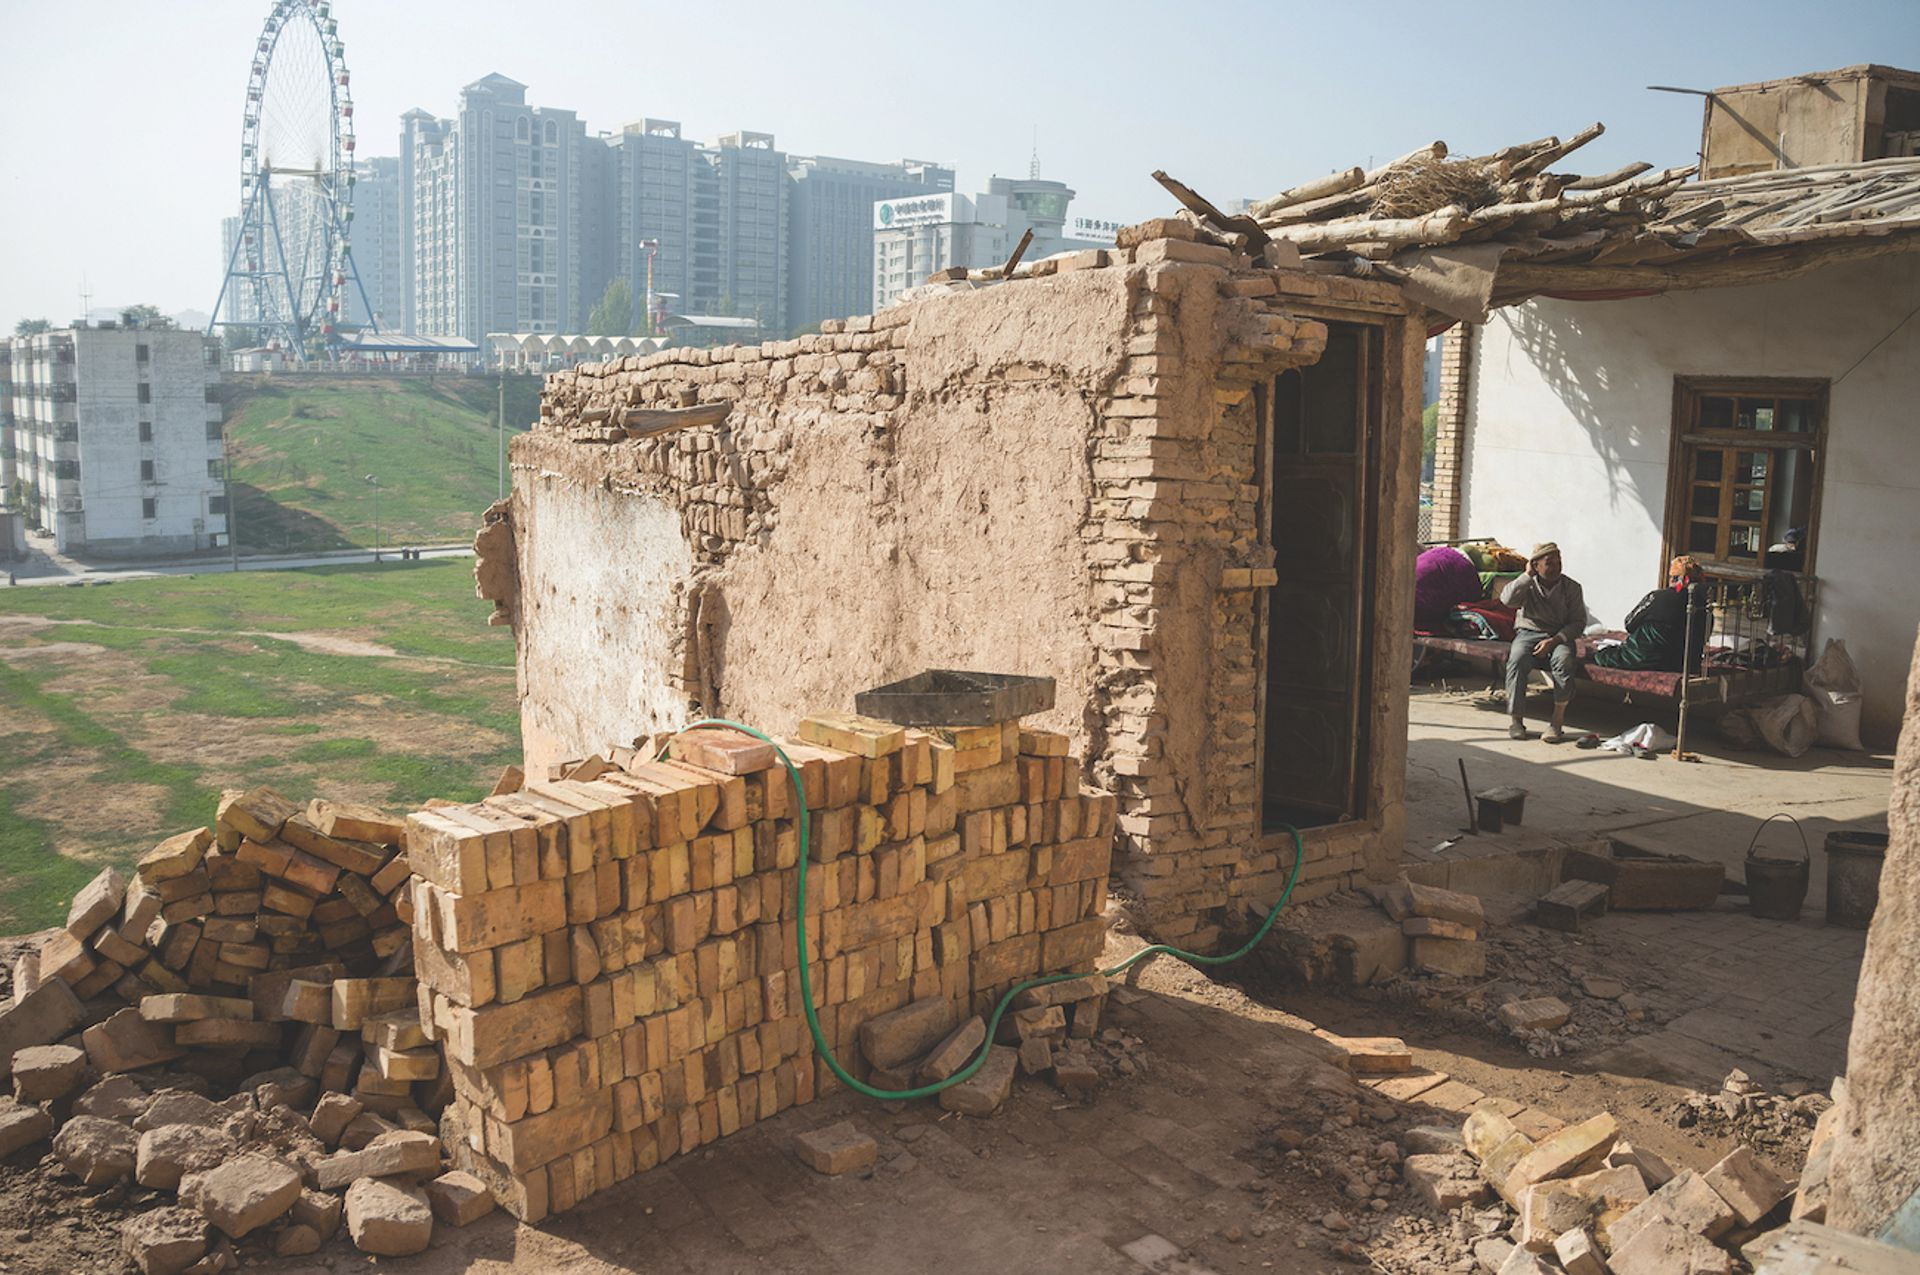 Kashgar's old city has been demolished, along with 70% of its mosques, and its population displaced @ 2012 Wulingyun